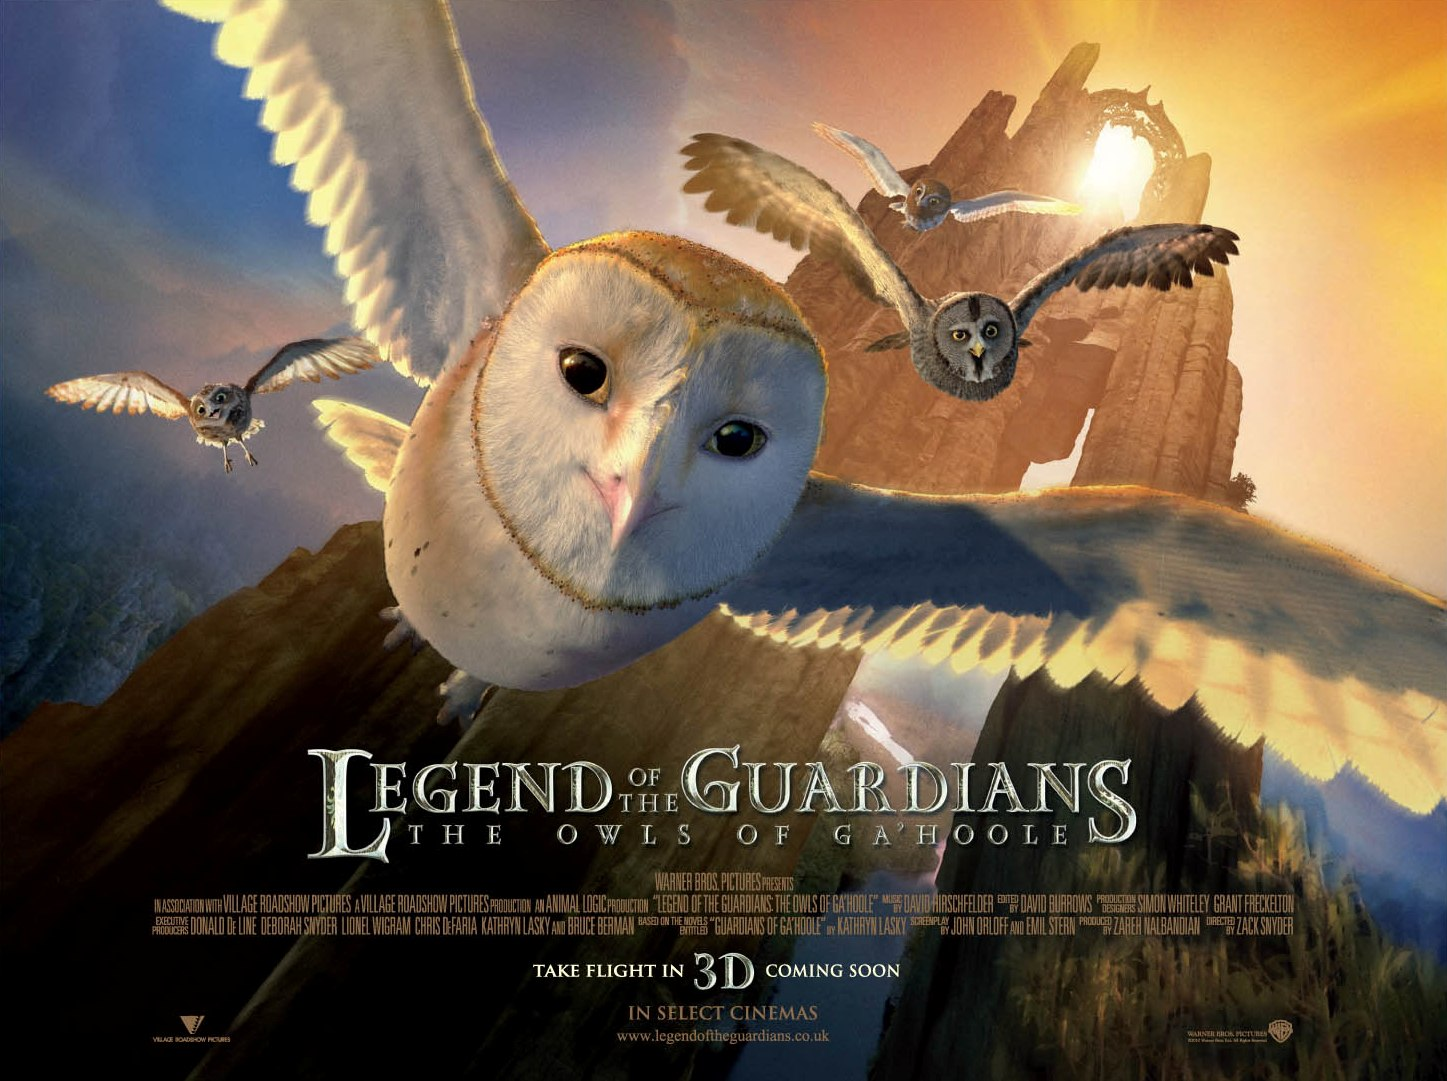 the legend of guardians